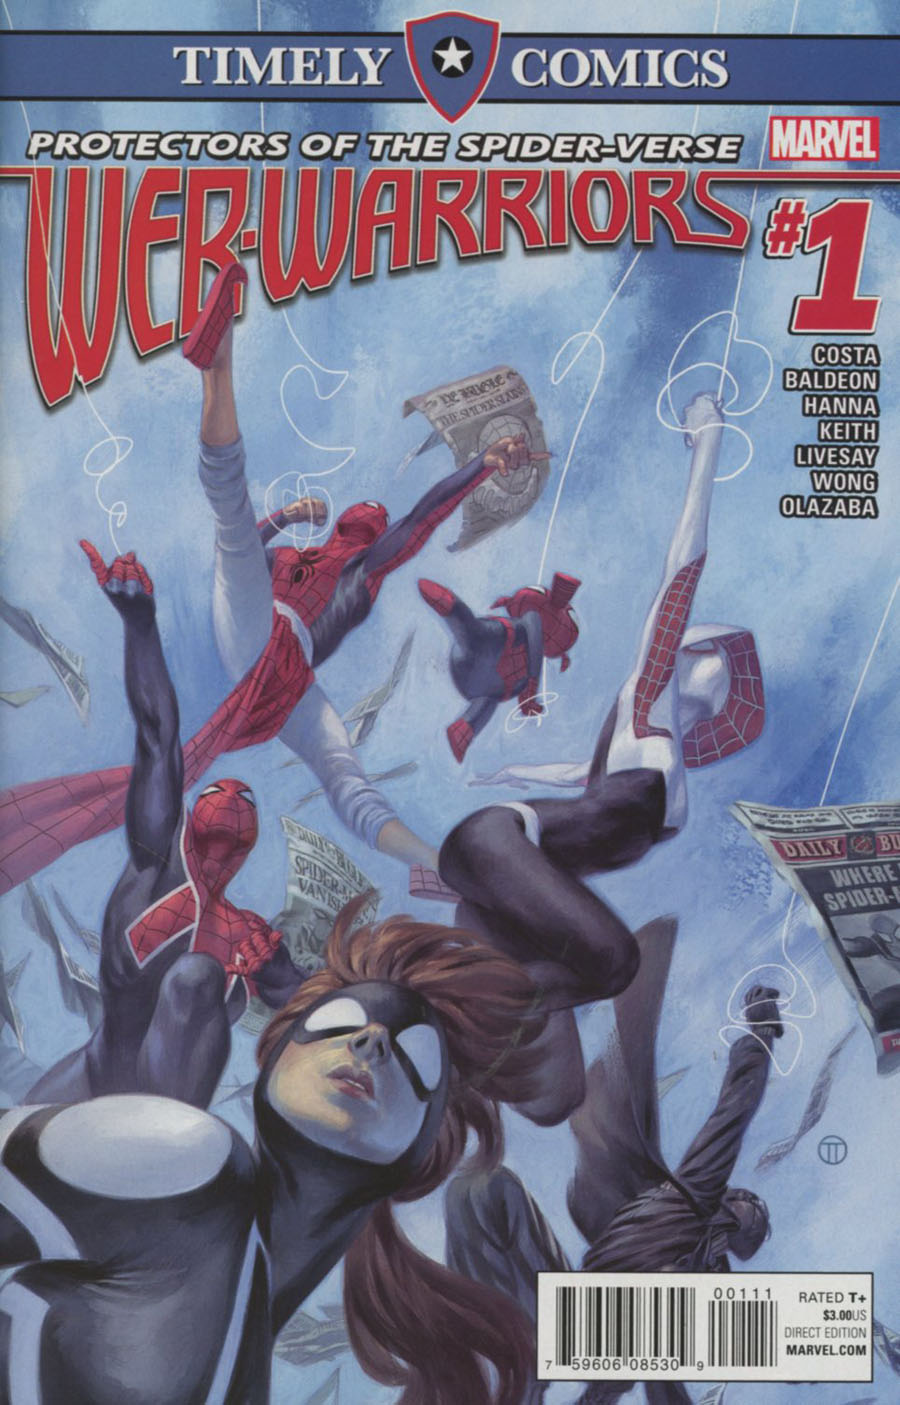 Timely Comics Web Warriors #1